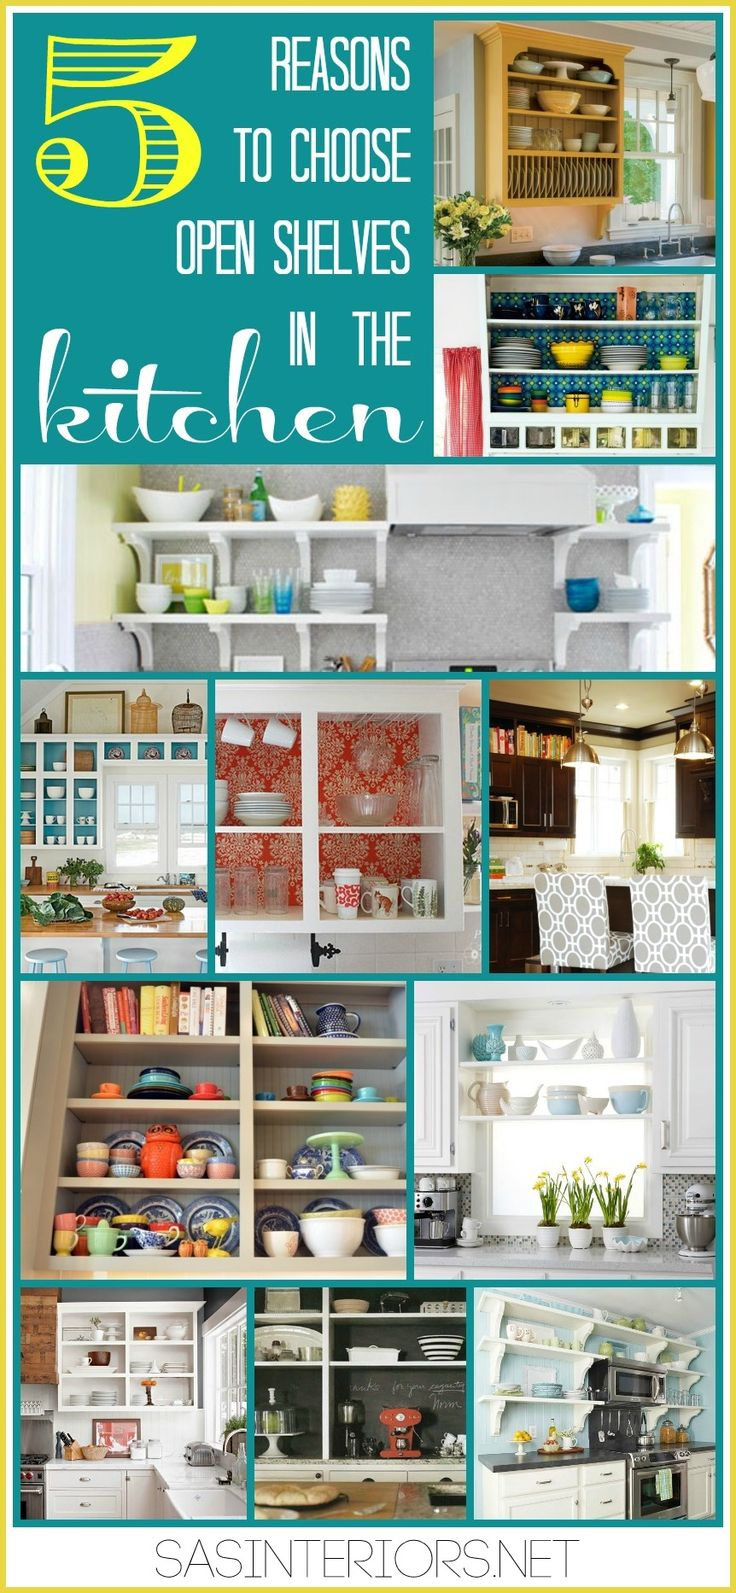 5 Reasons To Choose Open Shelves In The Kitchen Showcasing Examples Ideas For Open